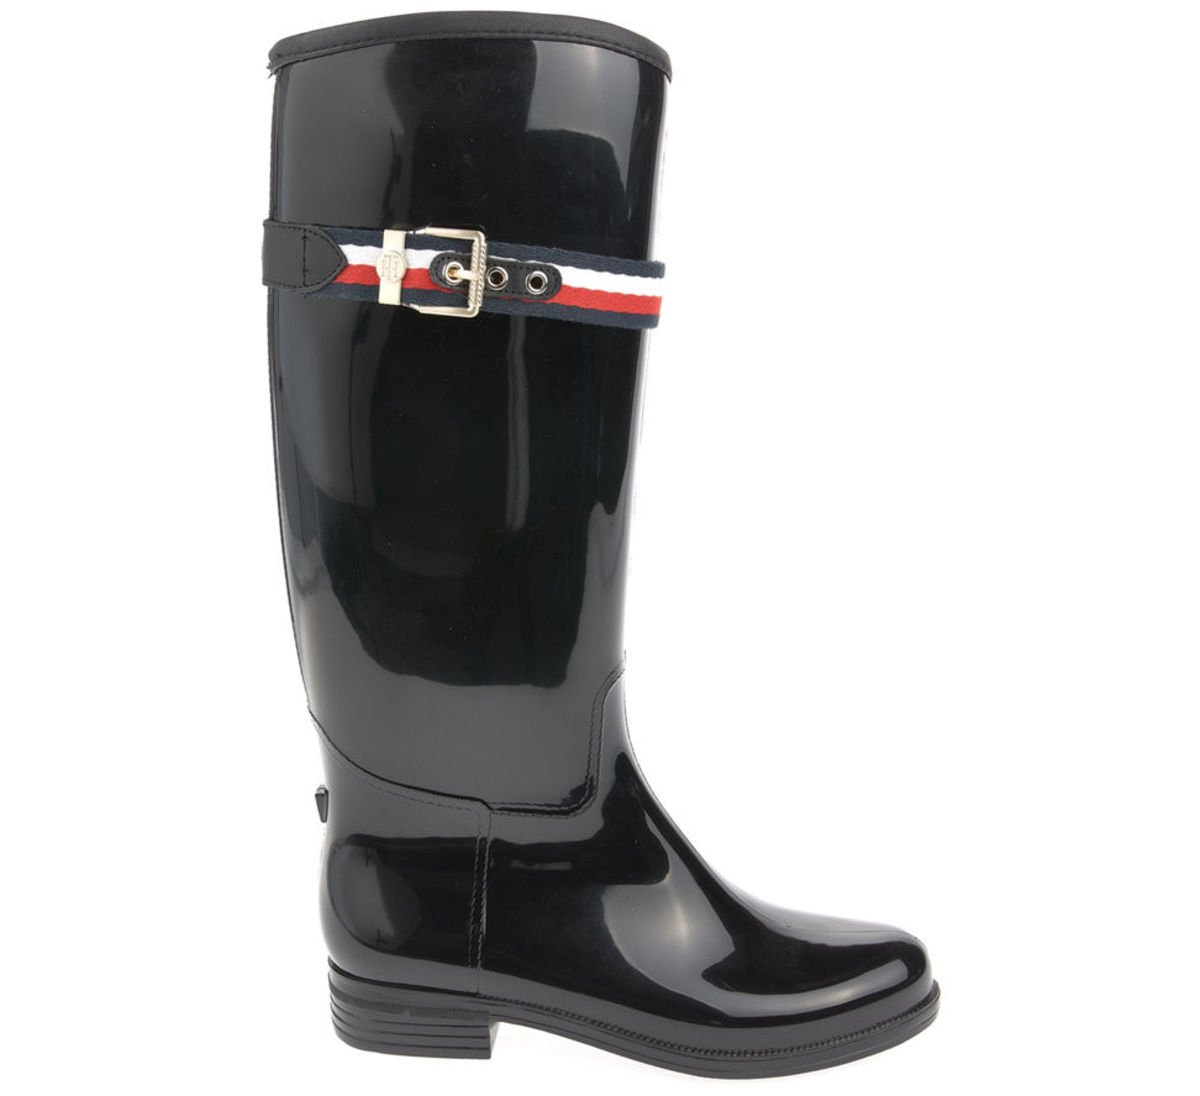 Bild 3 von Tommy Hilfiger Gummistiefel - CORPORATE BELT LONG RAIN BOOT